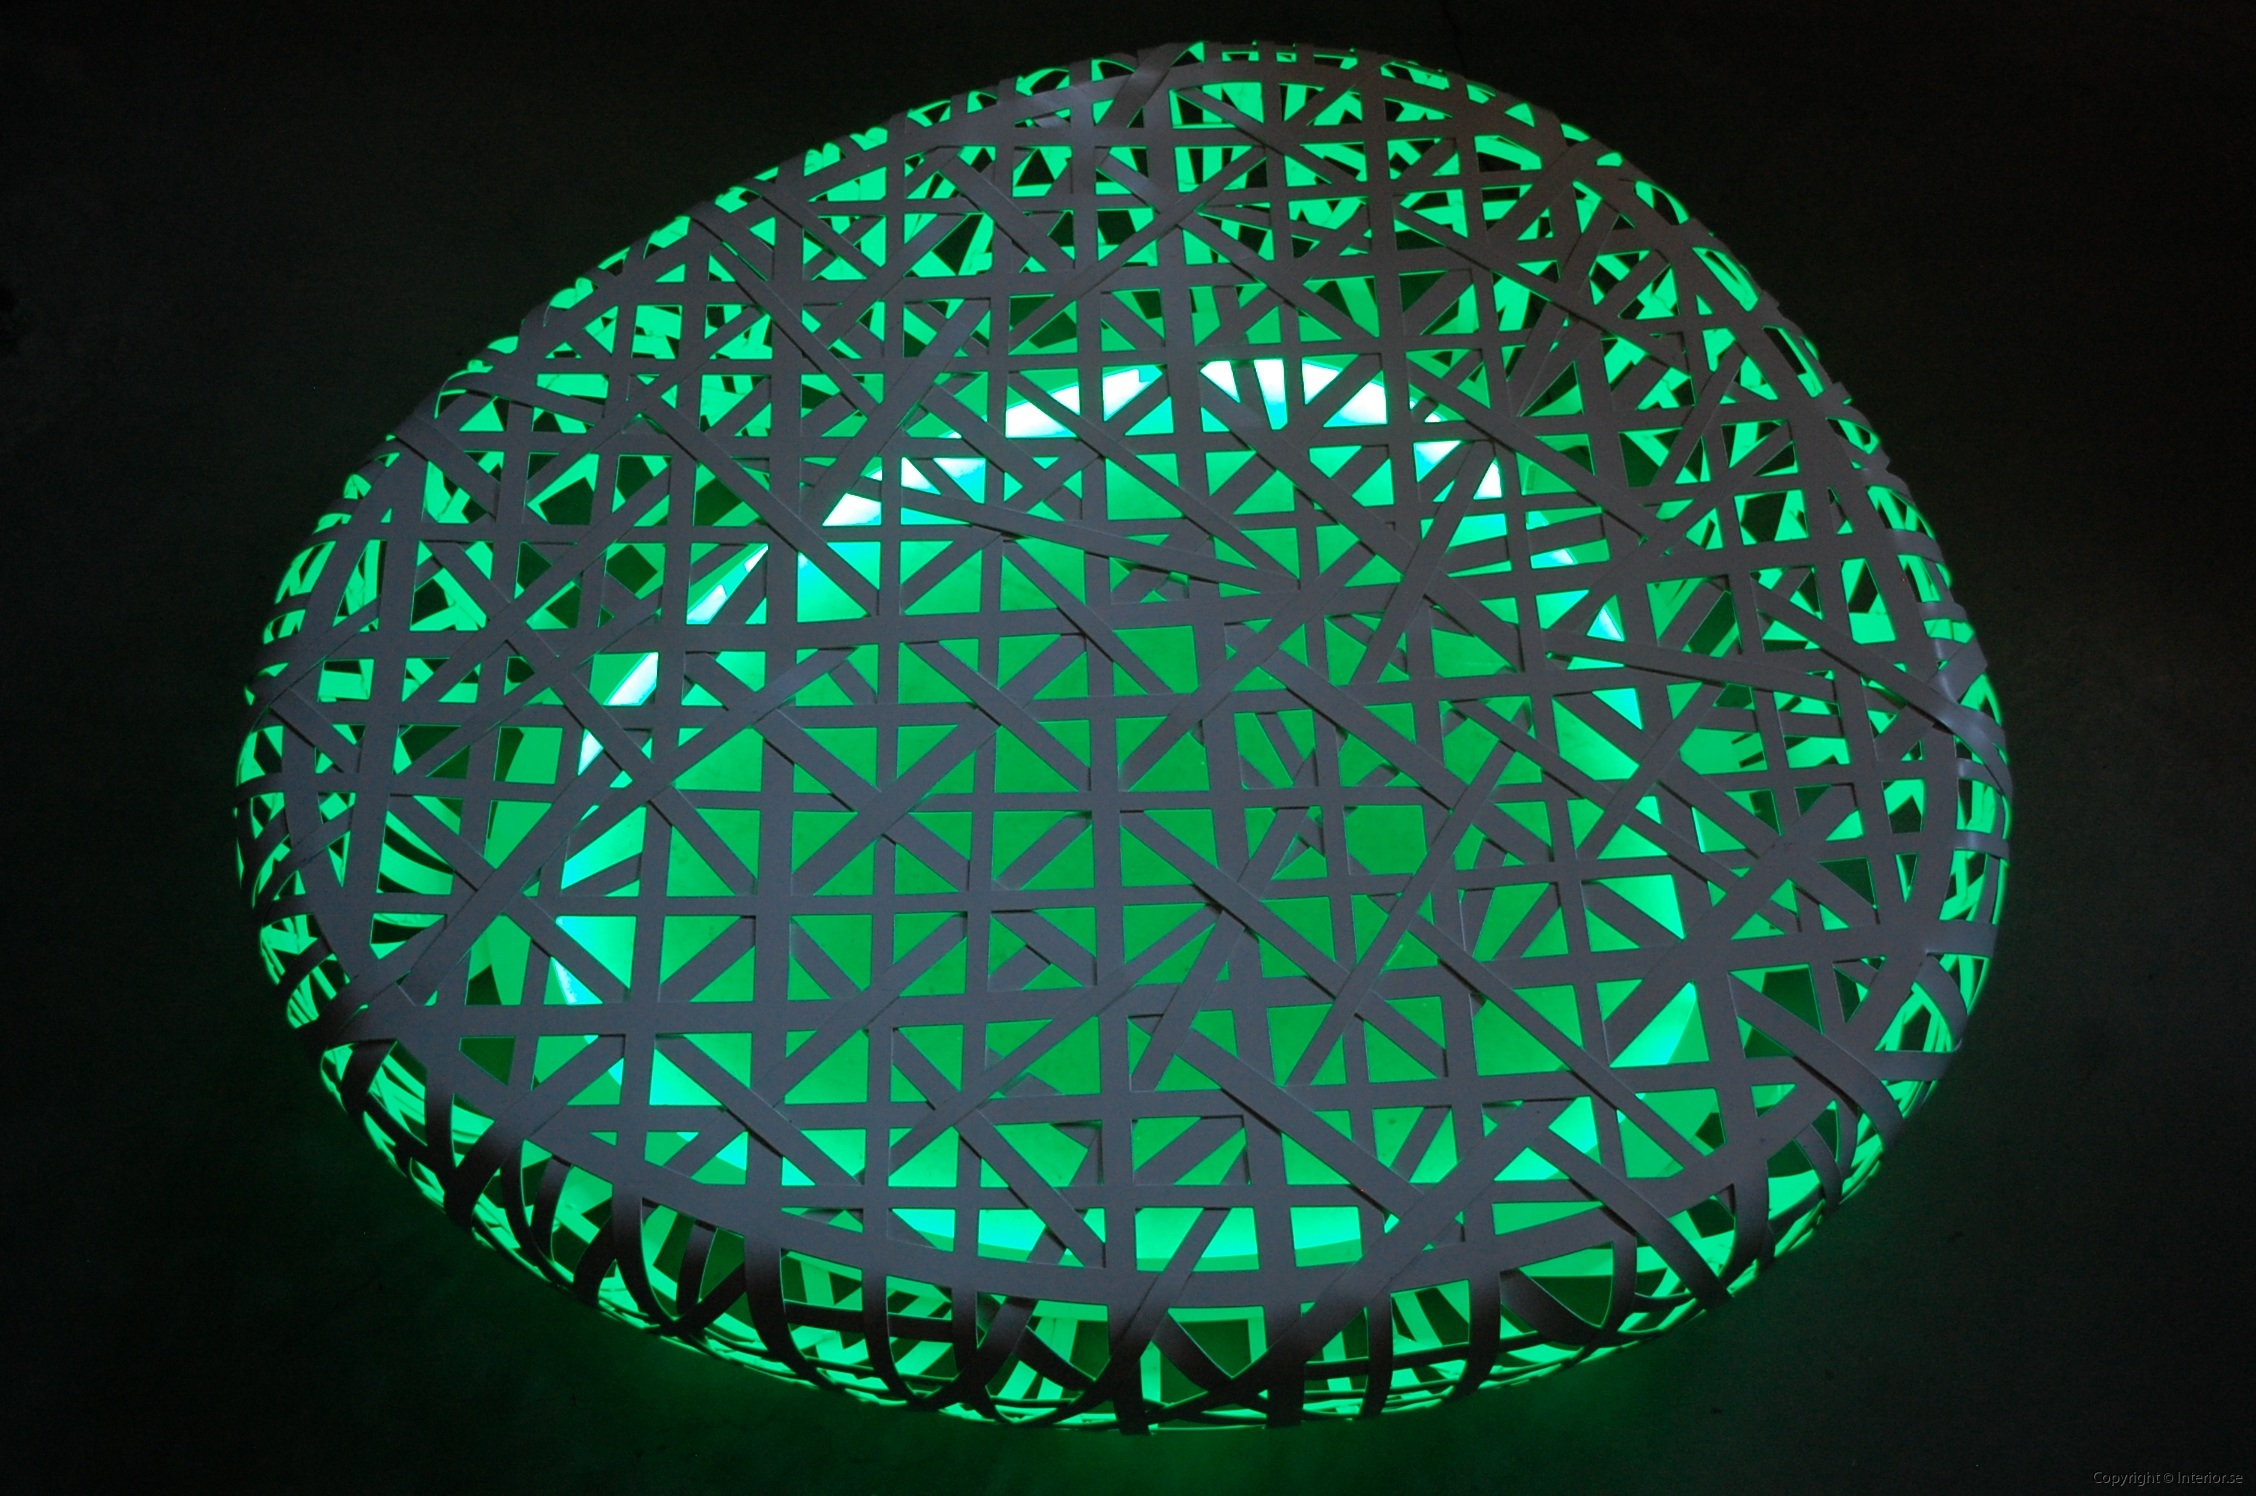 Hyra möbler stockholm led bird s nest beijing china kina stadium furniture sofa event möbler (24)